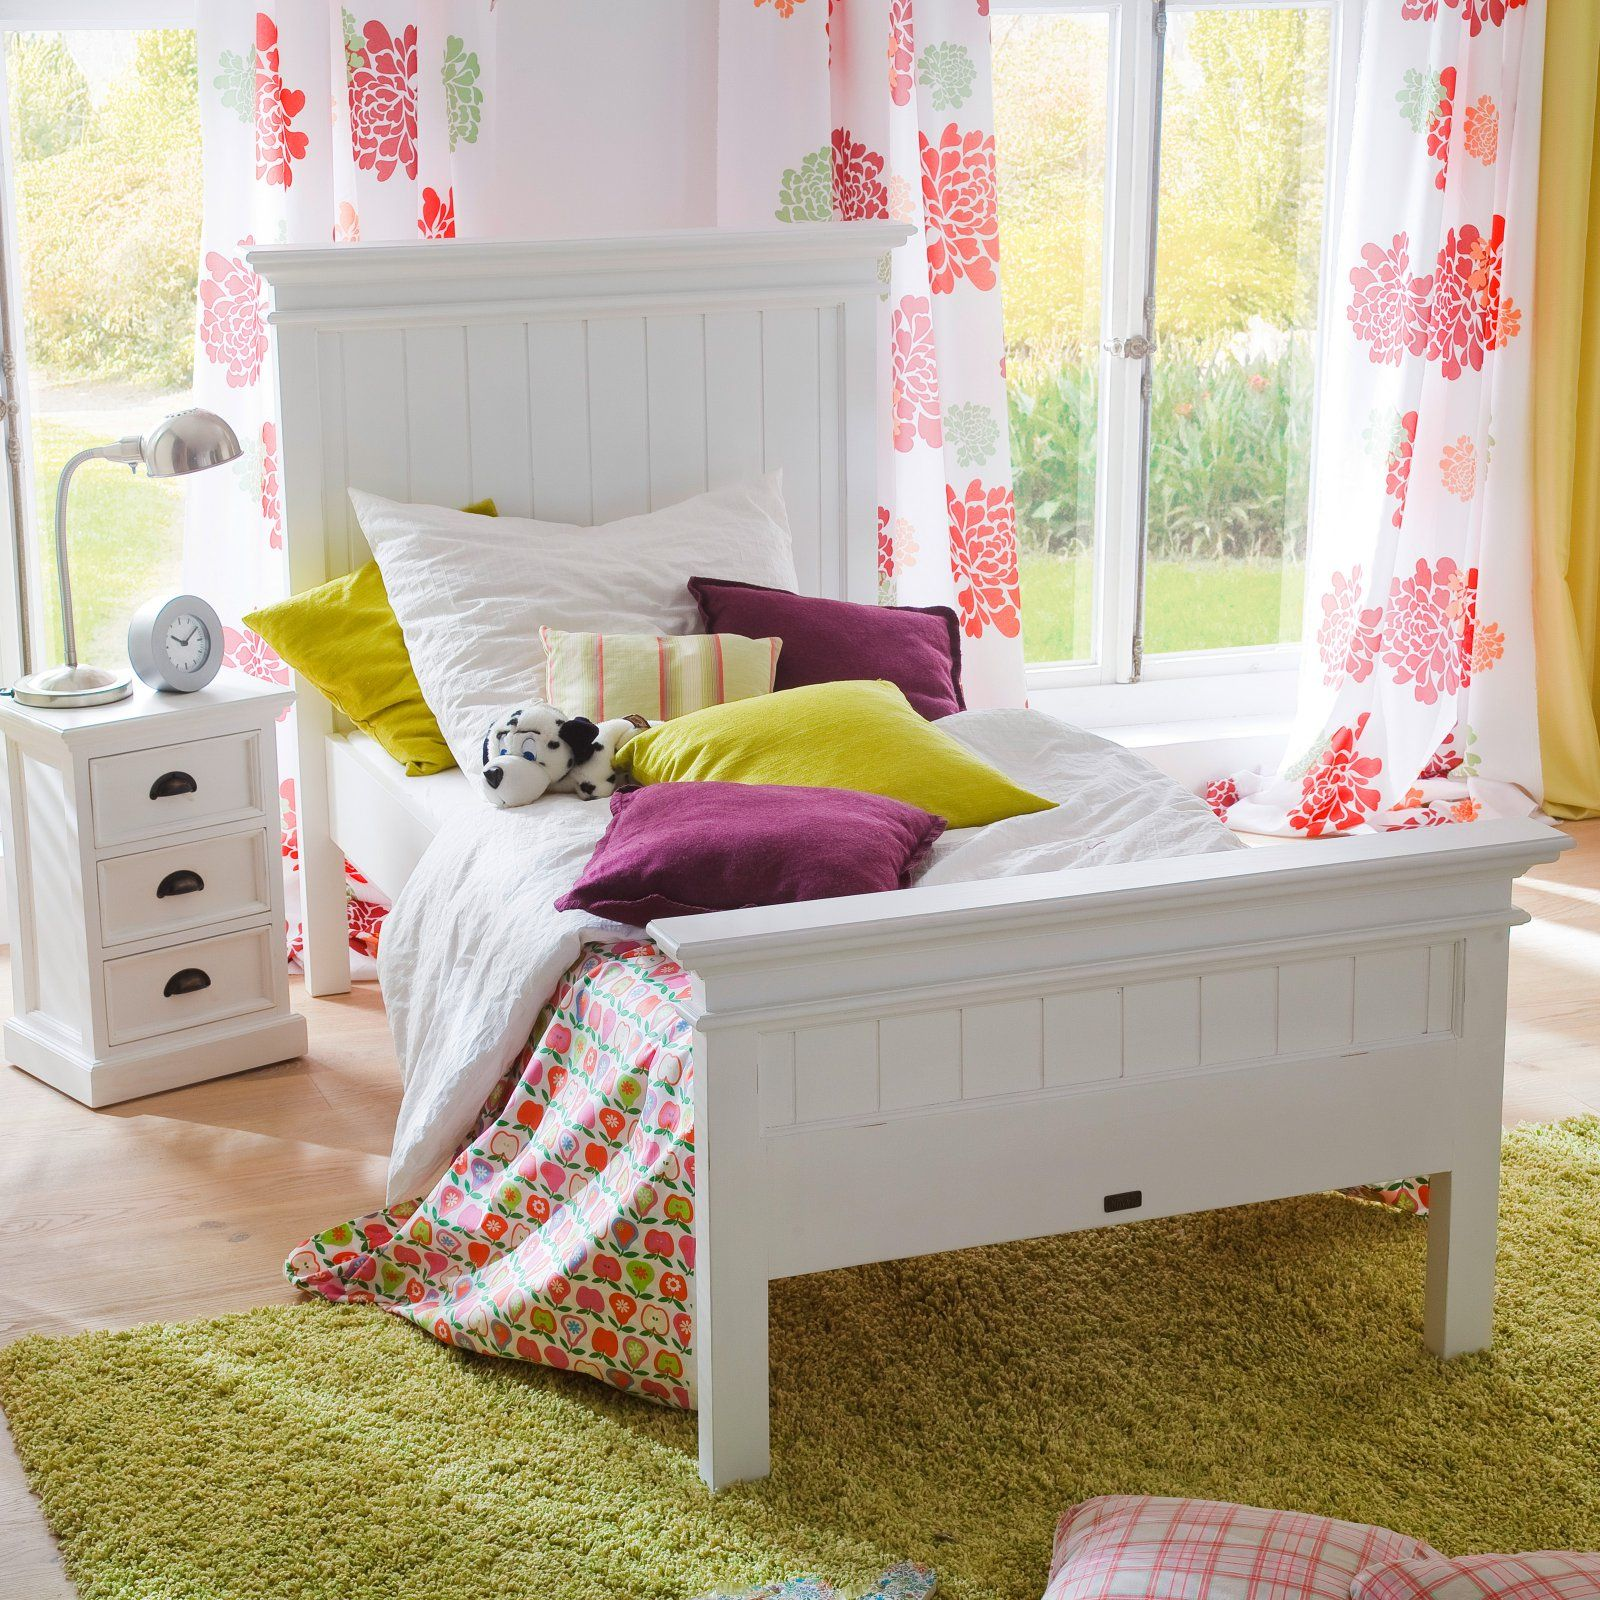 Nova Solo Halifax Panel Bed, Size Twin Panel bed